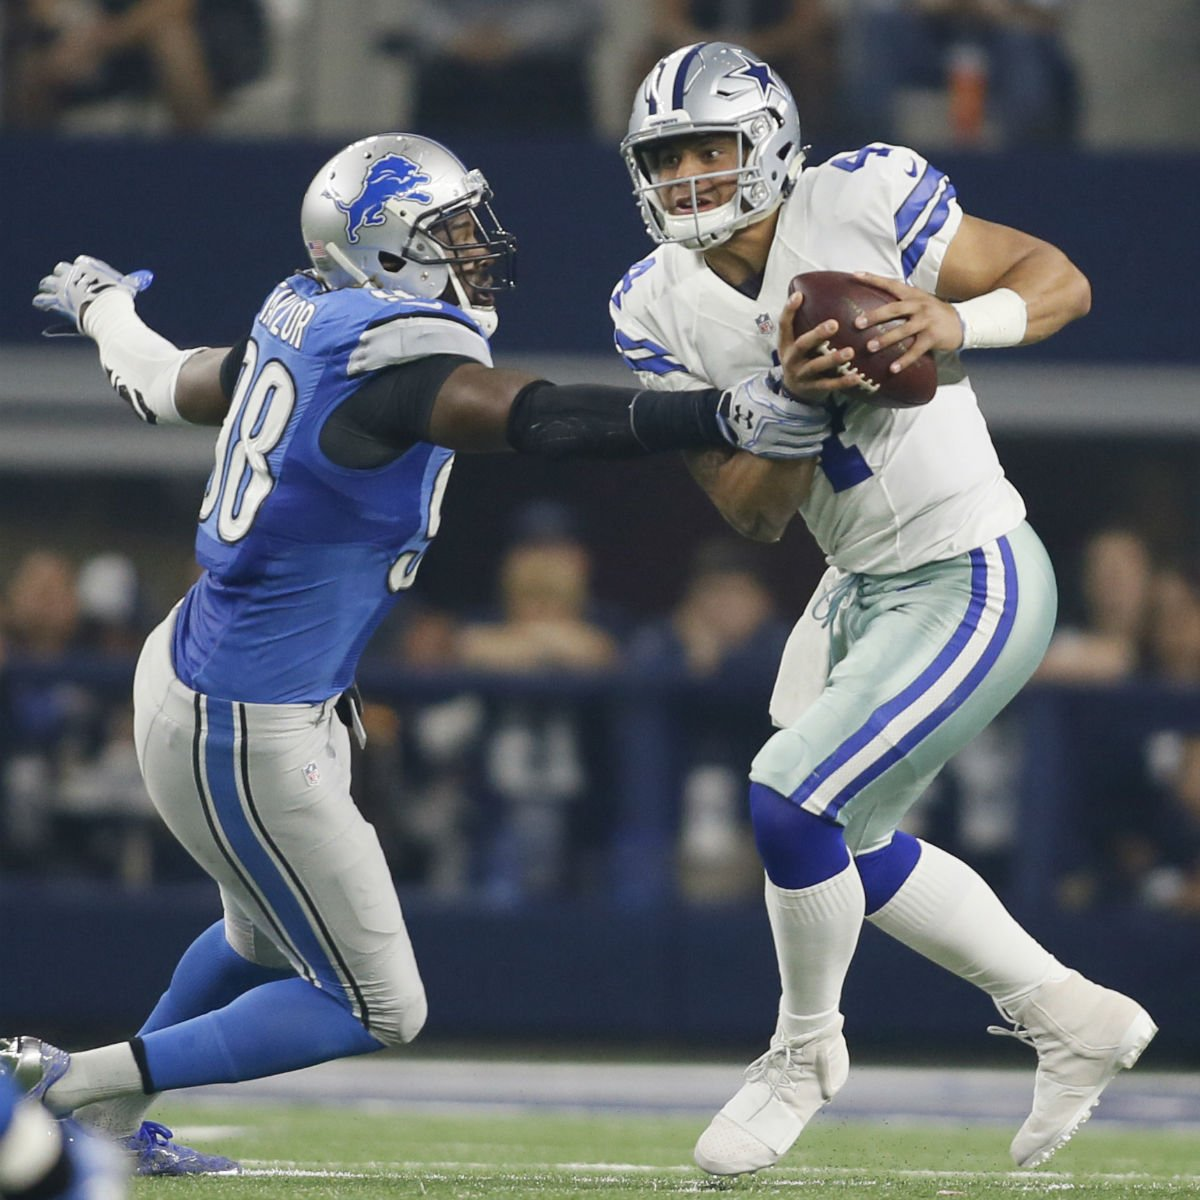 6a054c9c6 solewatch   dak actually playing in yeezy 750 cleats. - scoopnest.com